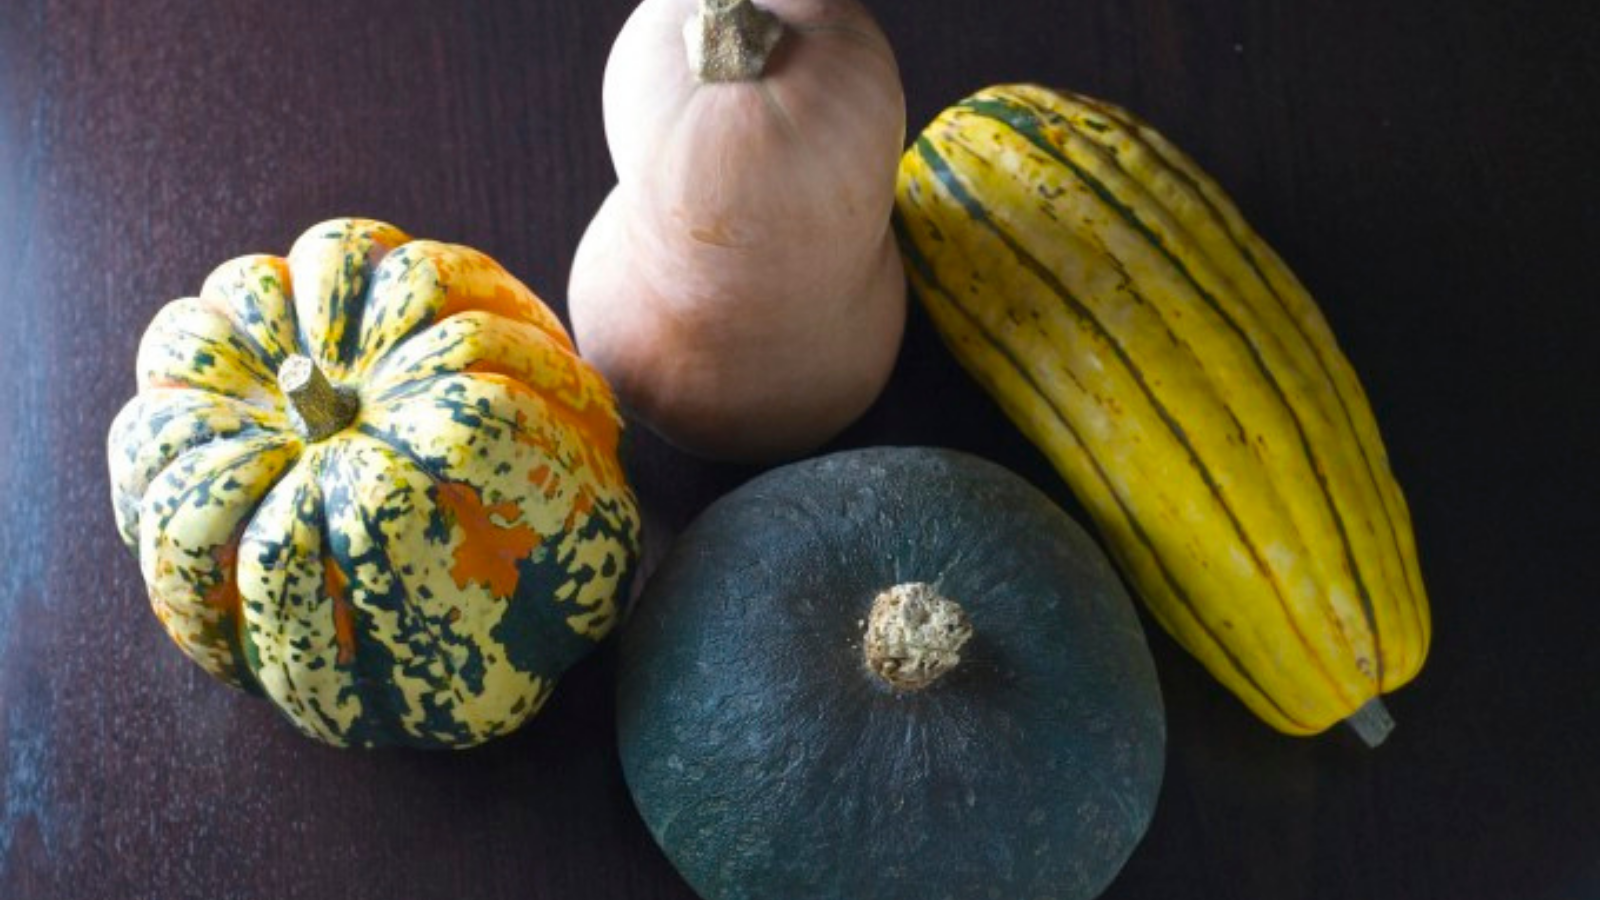 Recipes for utilizing the different types of squashes available in the winter season